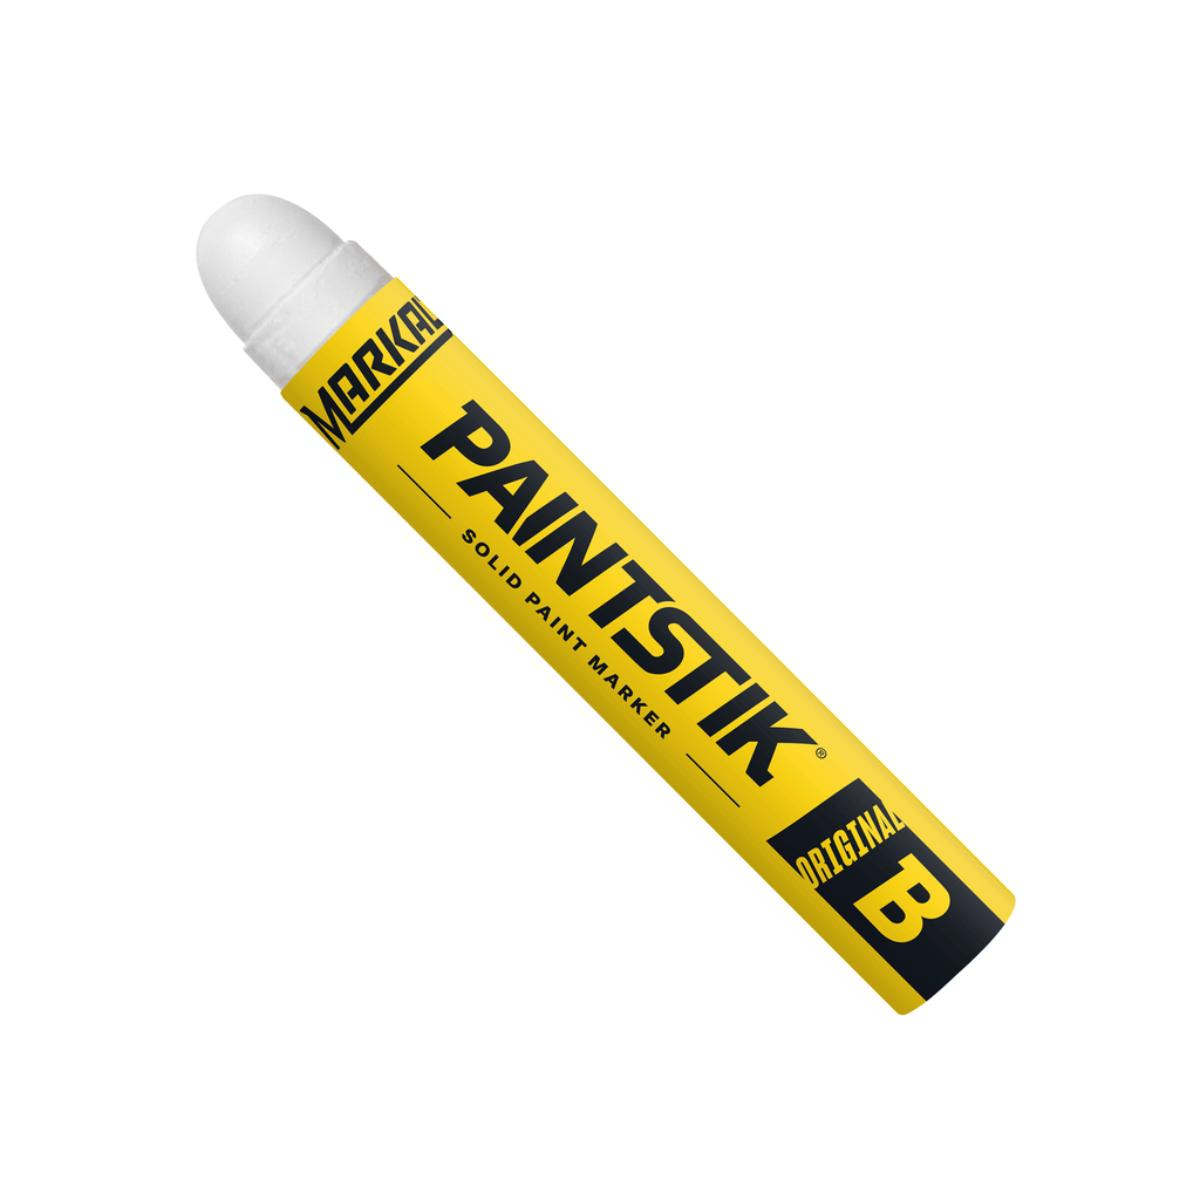 B® Paintstik® Solid Paint Crayon, White